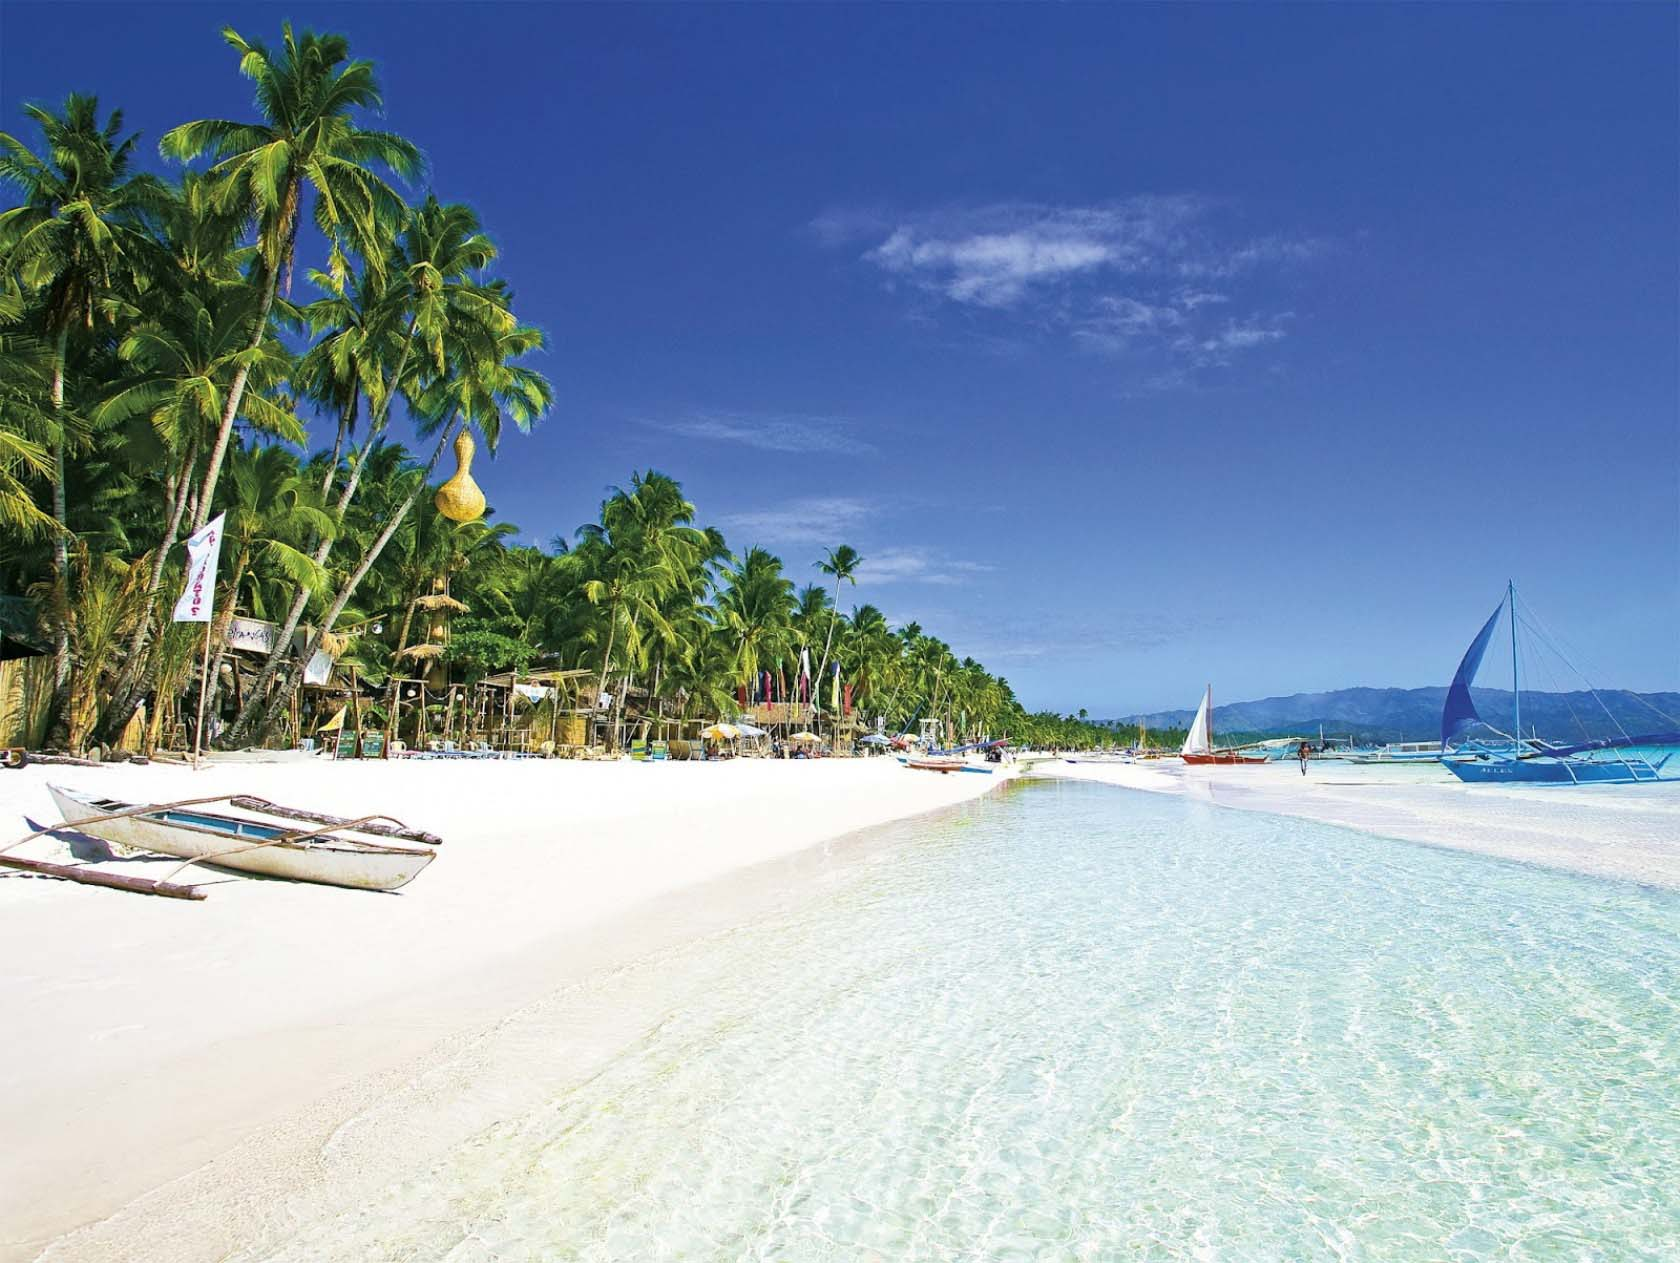 morning-time-in-Boracay-Beach-Philippines